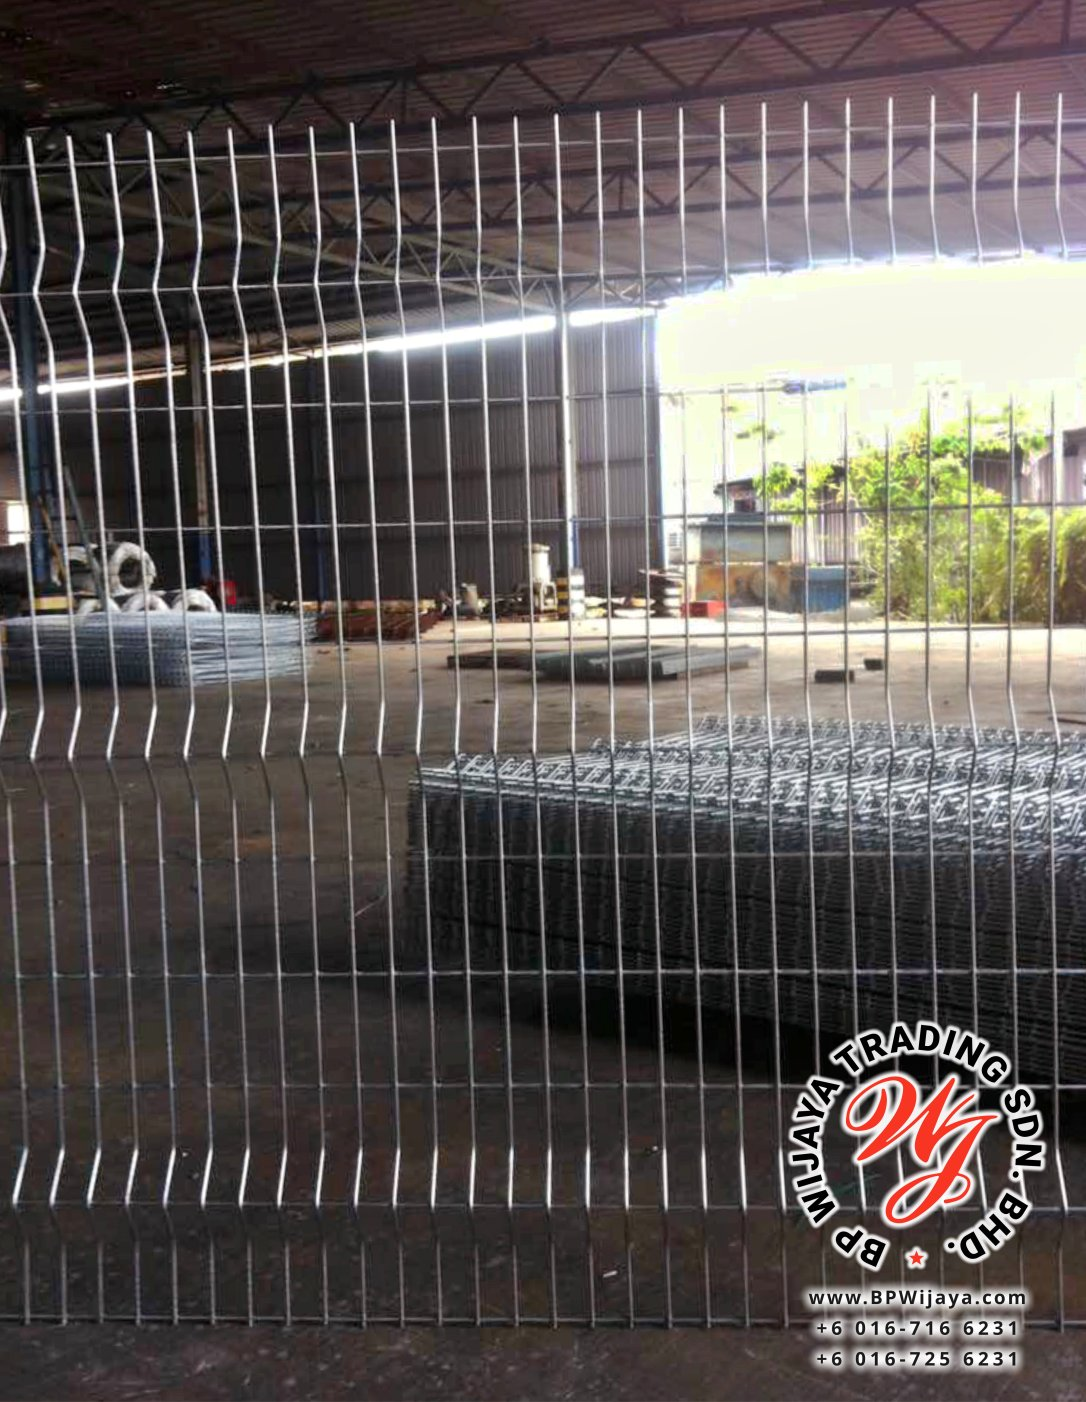 BP Wijaya Trading Sdn Bhd Malaysia Johor Batu Pahat manufacturer of safety fences building materials Hotdip Galvanized Fence Shape V Mesh Wire Fence FAV V Shape Fence BRC B03